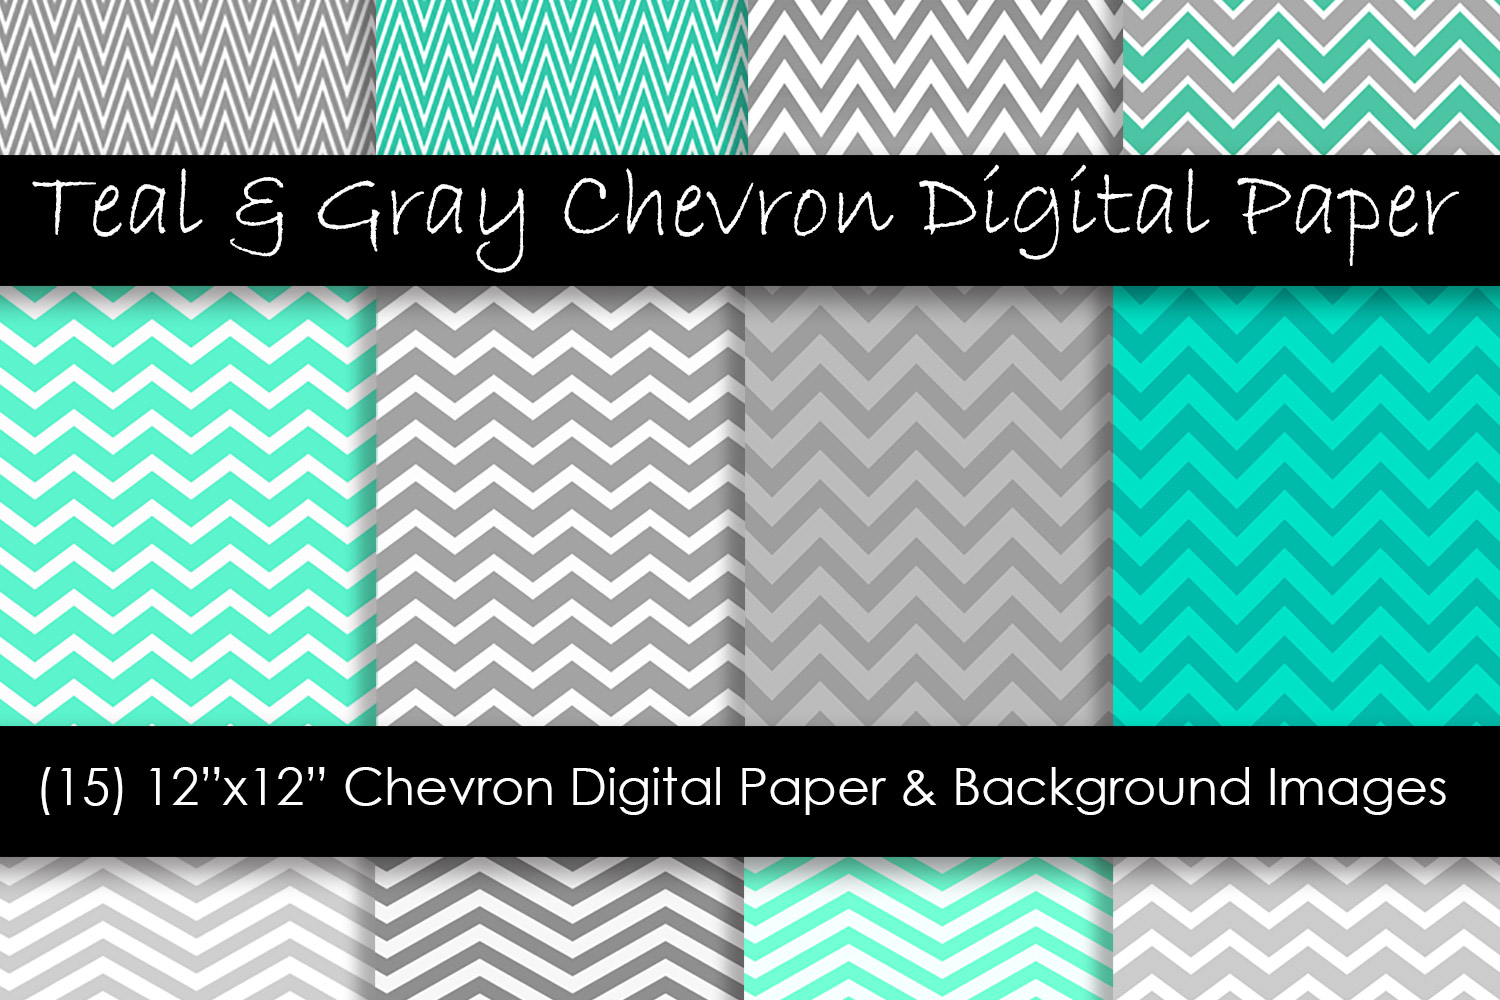 Teal & Gray Chevron Patterns example image 1